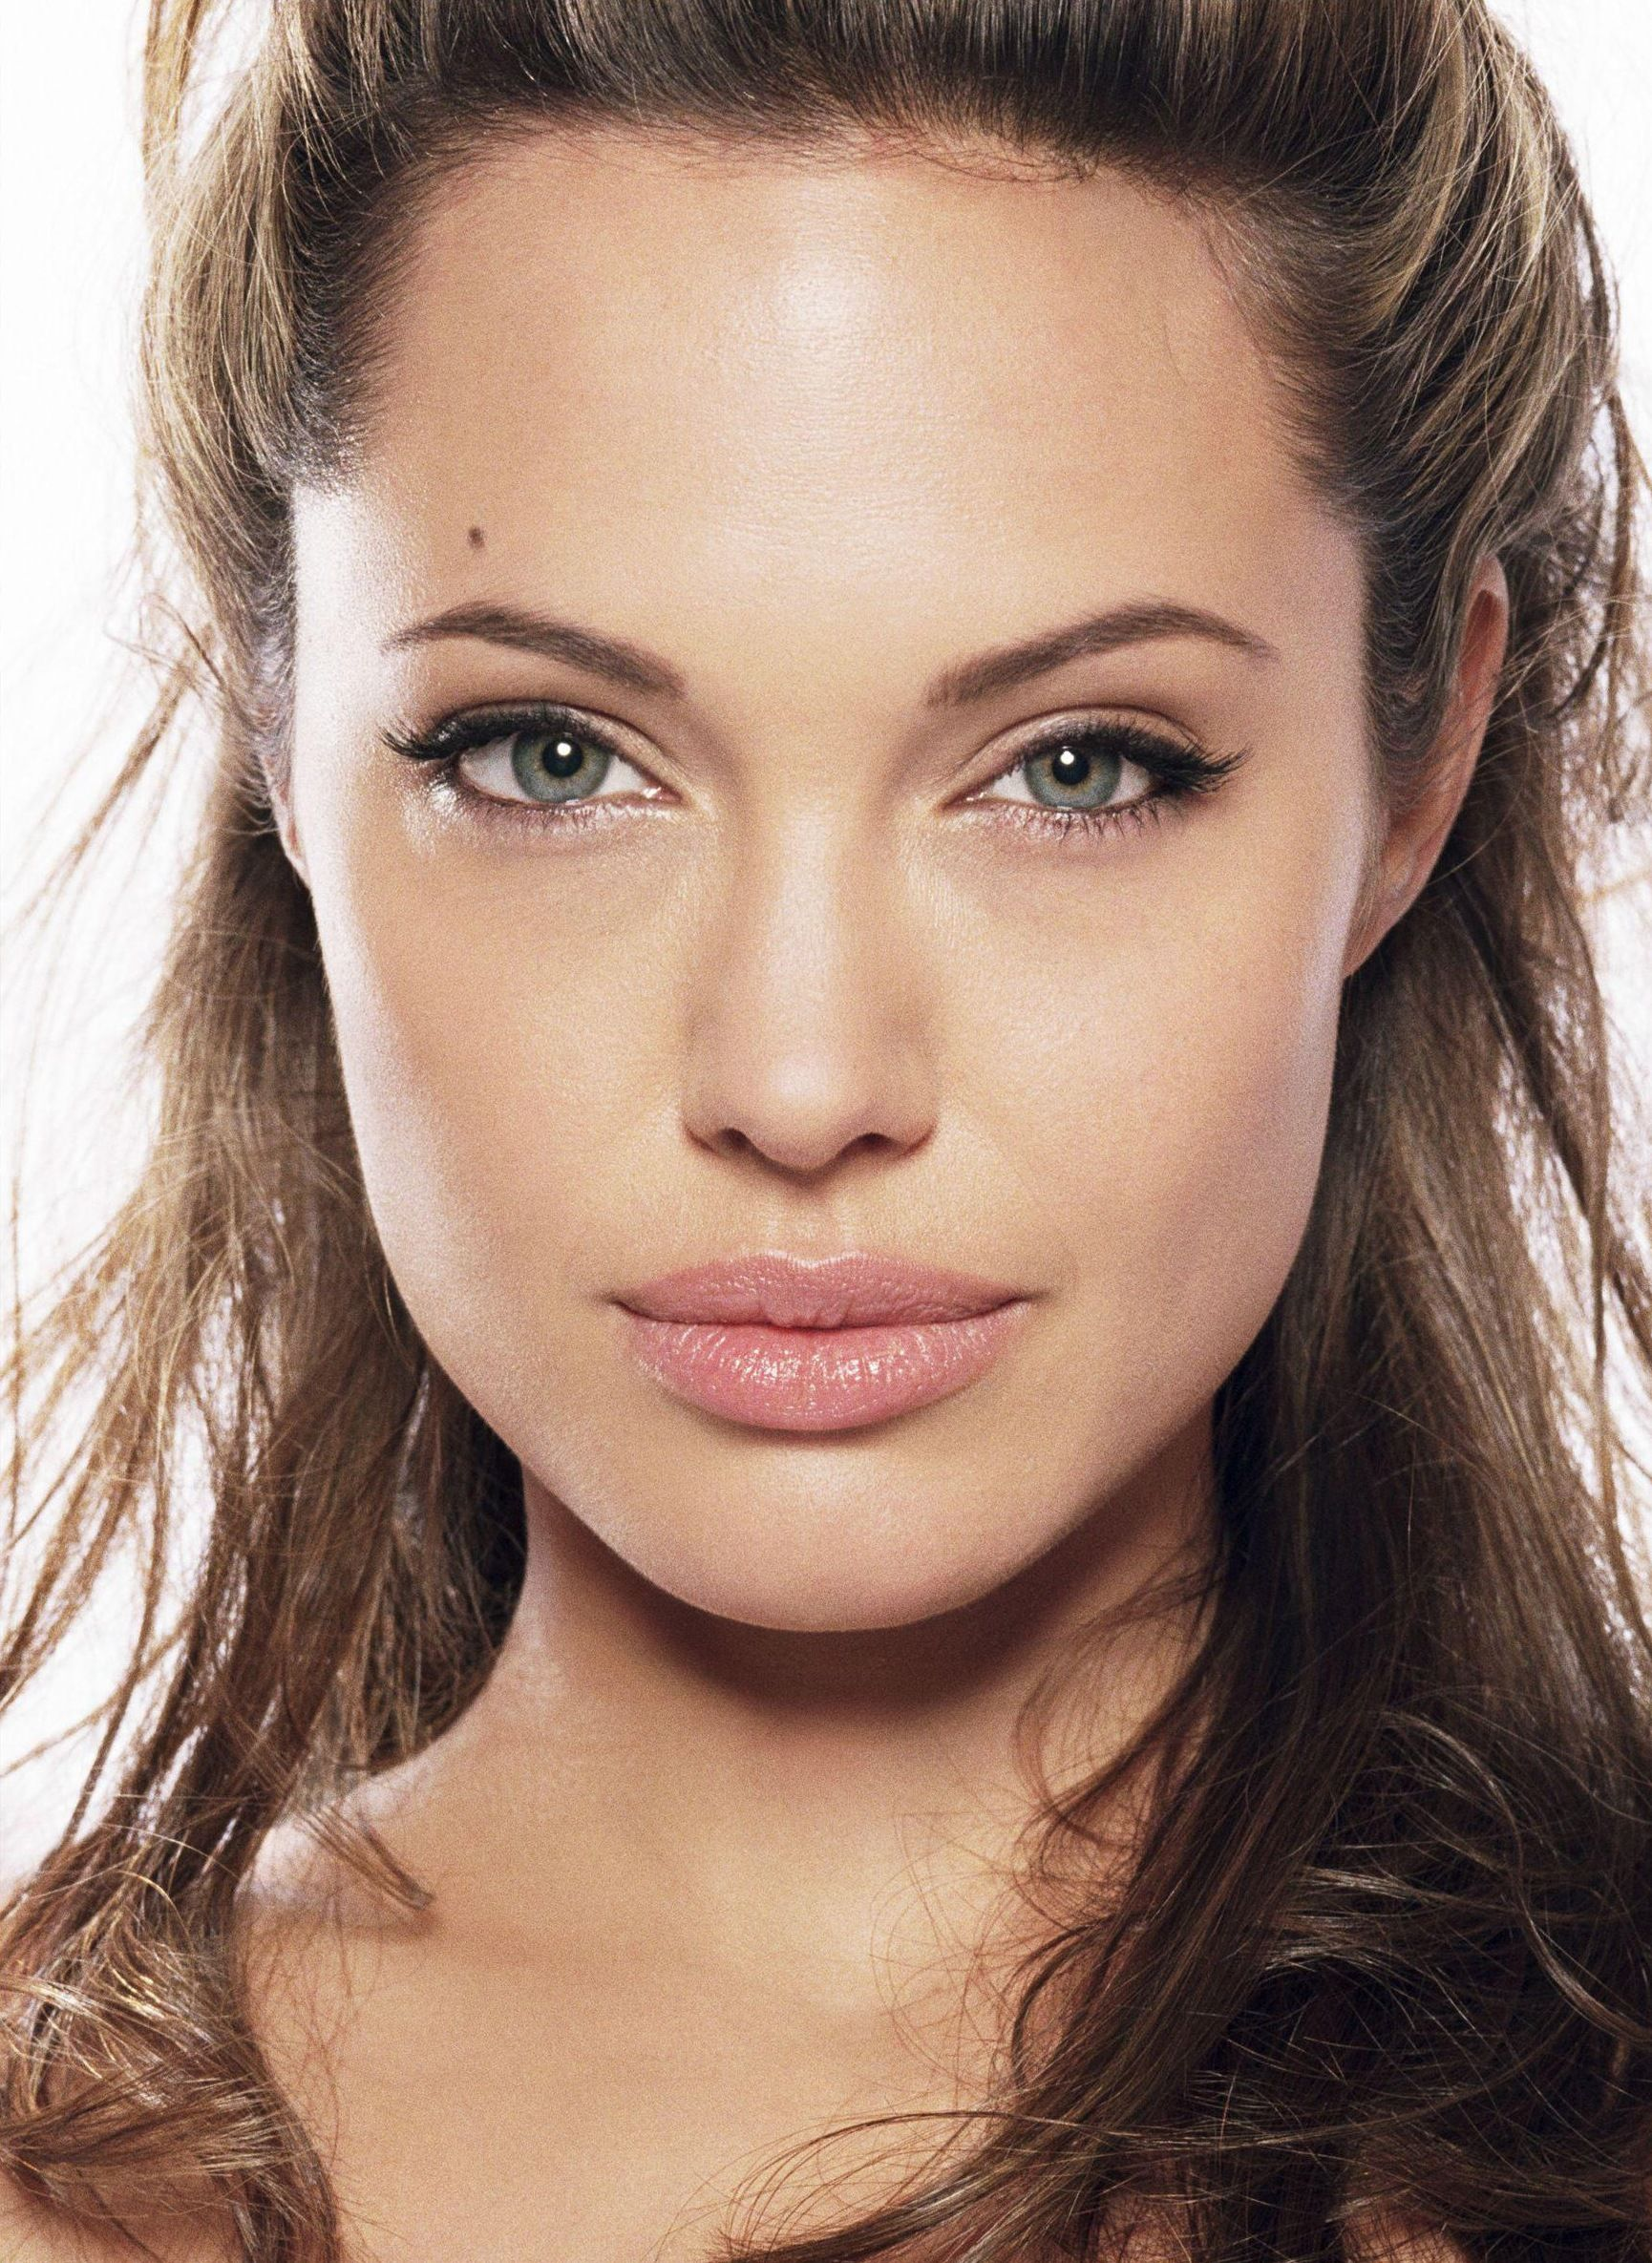 jolie face Angelina